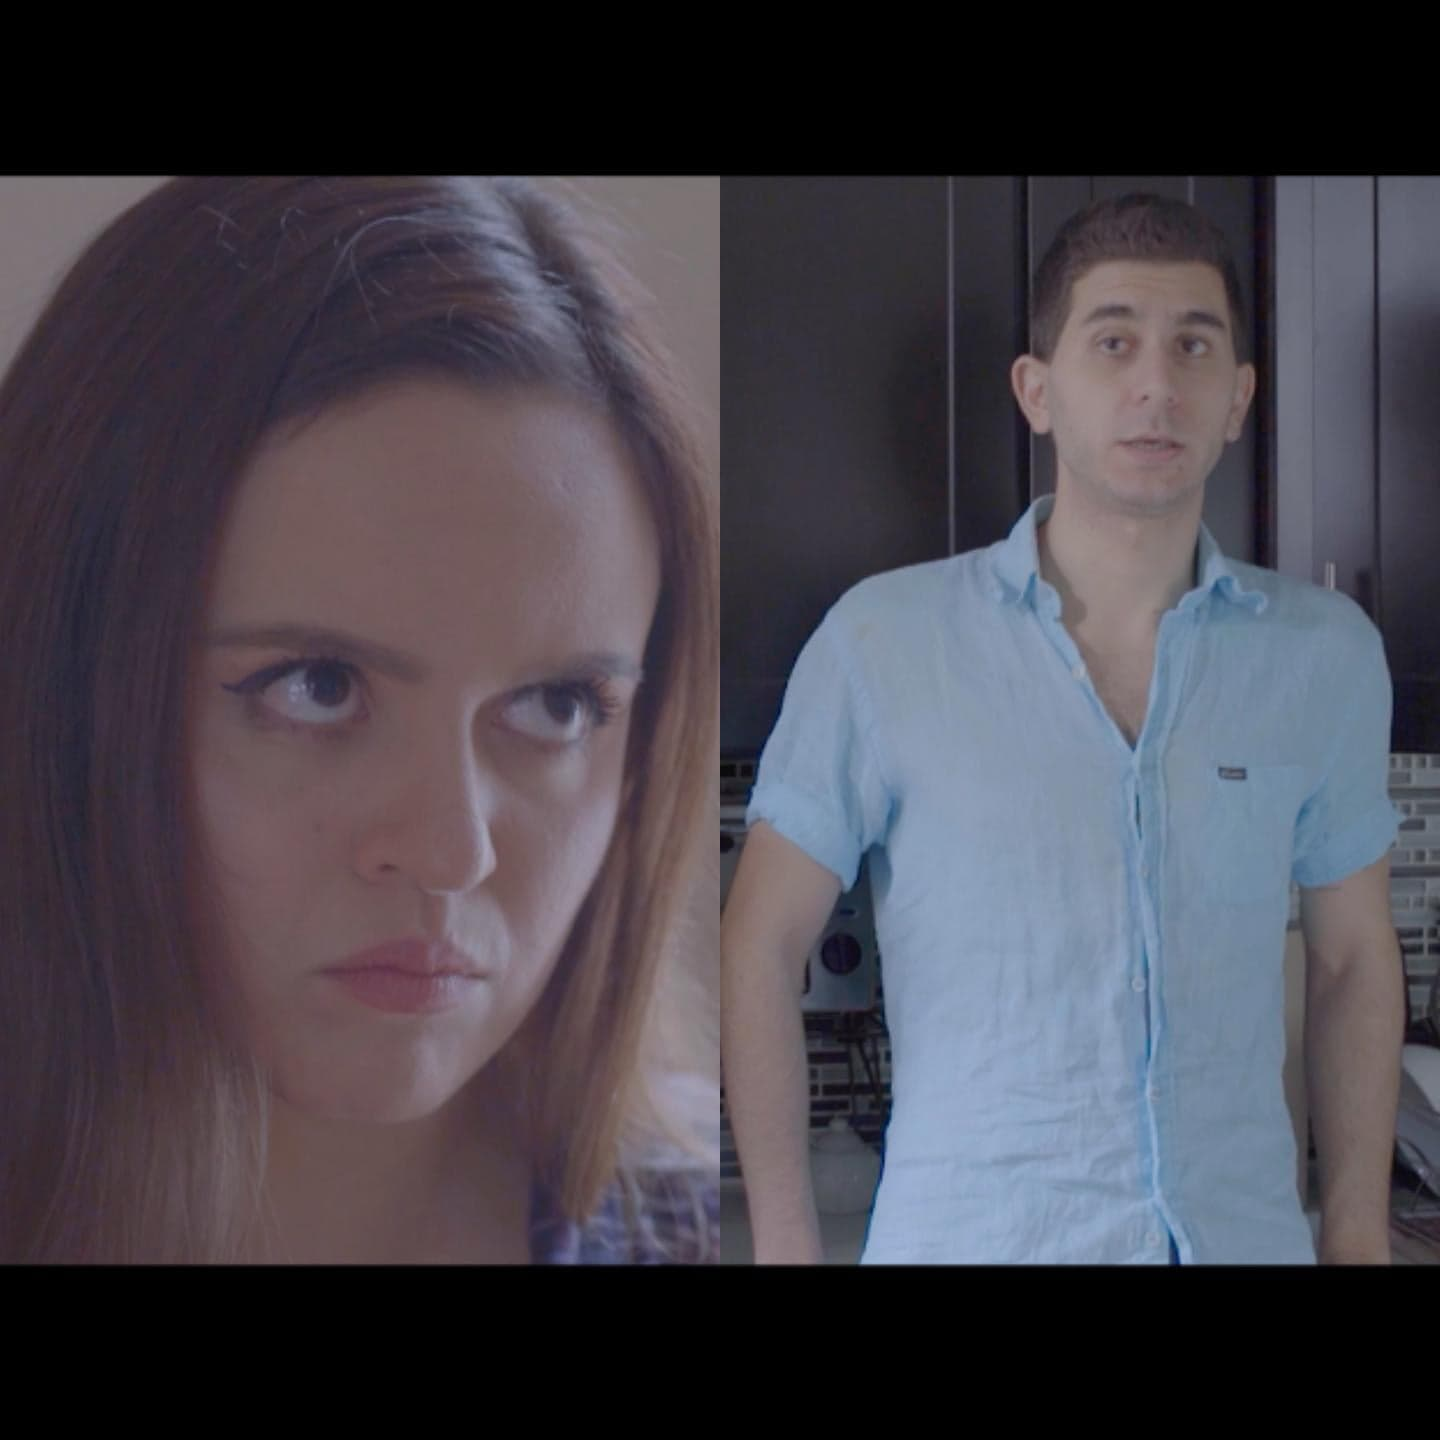 Cor Meum - Check out this spooky, fun short that was written by Ryan Attie! Video link is on the Media page.